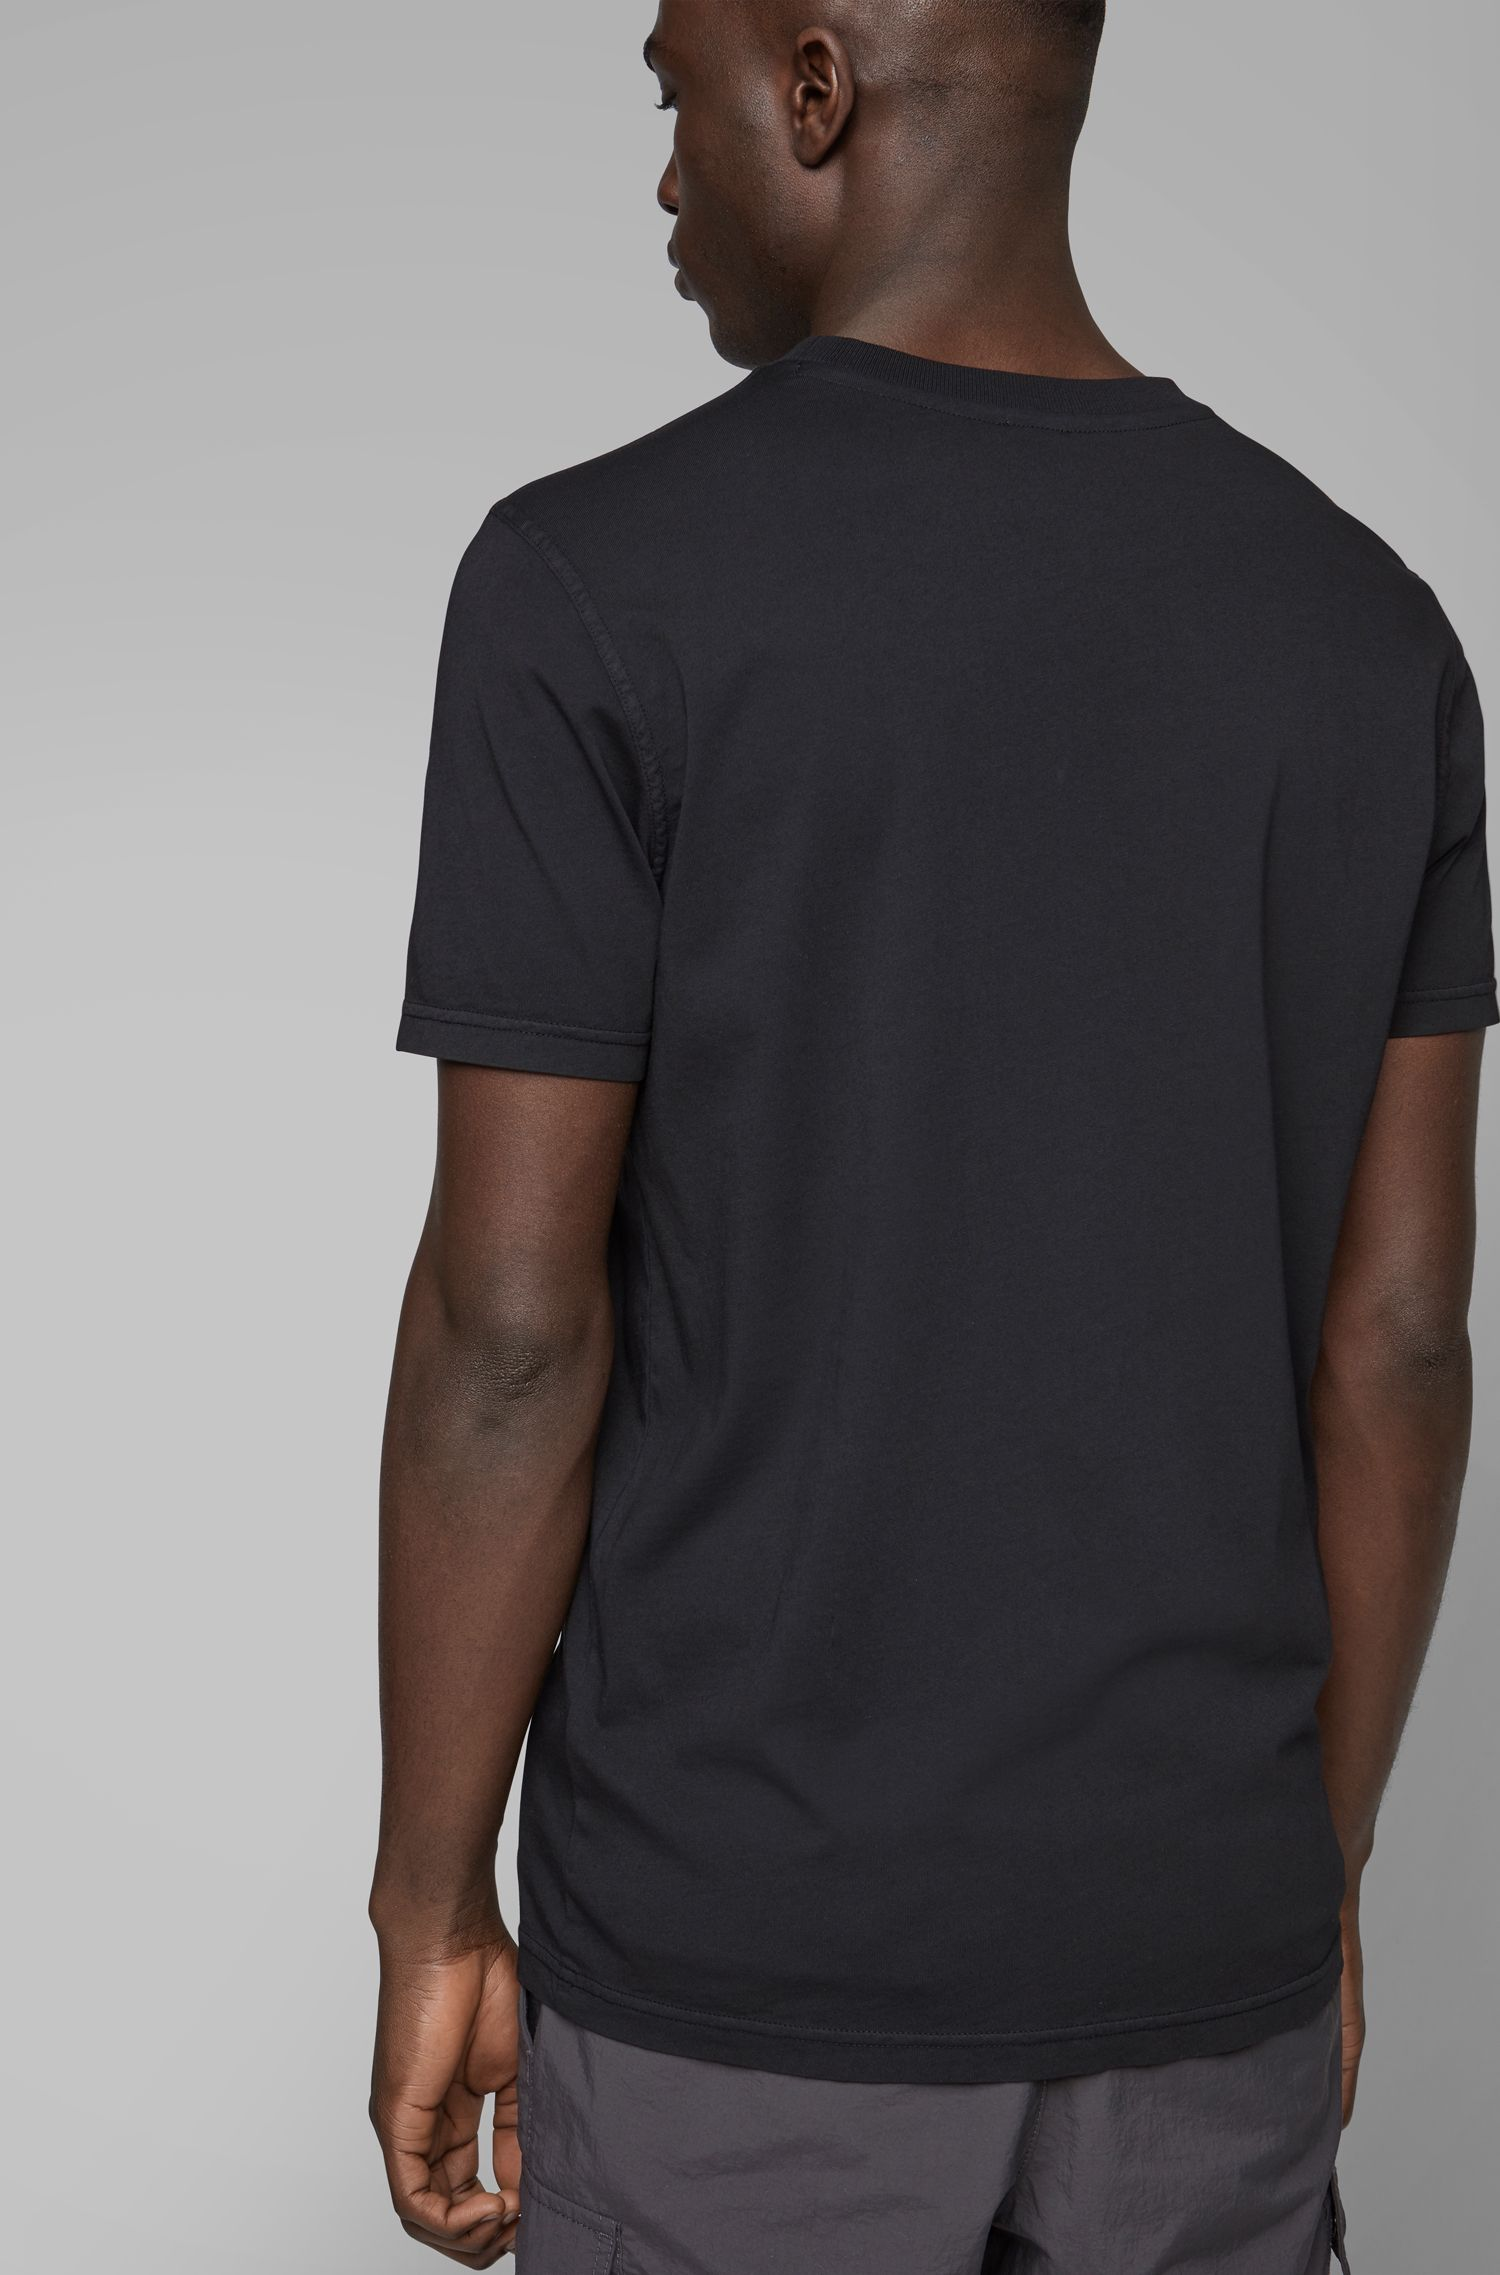 Crew-neck T-shirt in garment-dyed single-jersey cotton, Black